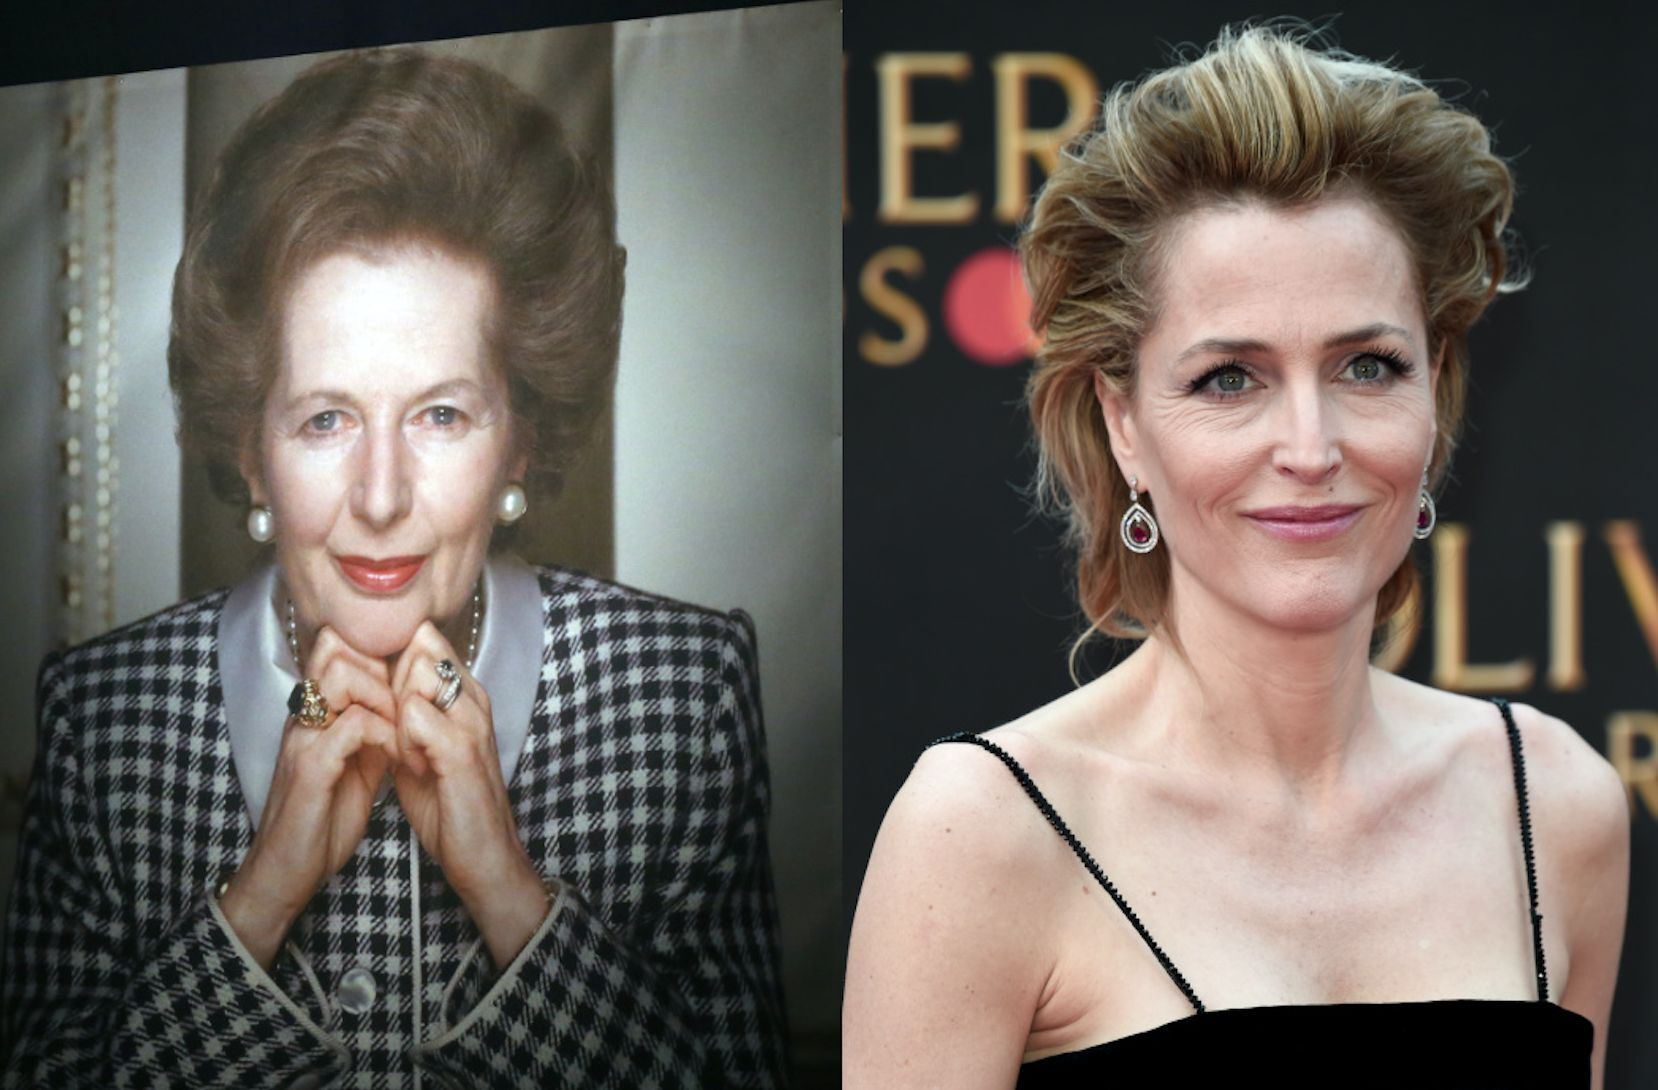 Gillian Anderson is playing Margaret Thatcher in The Crown season 3